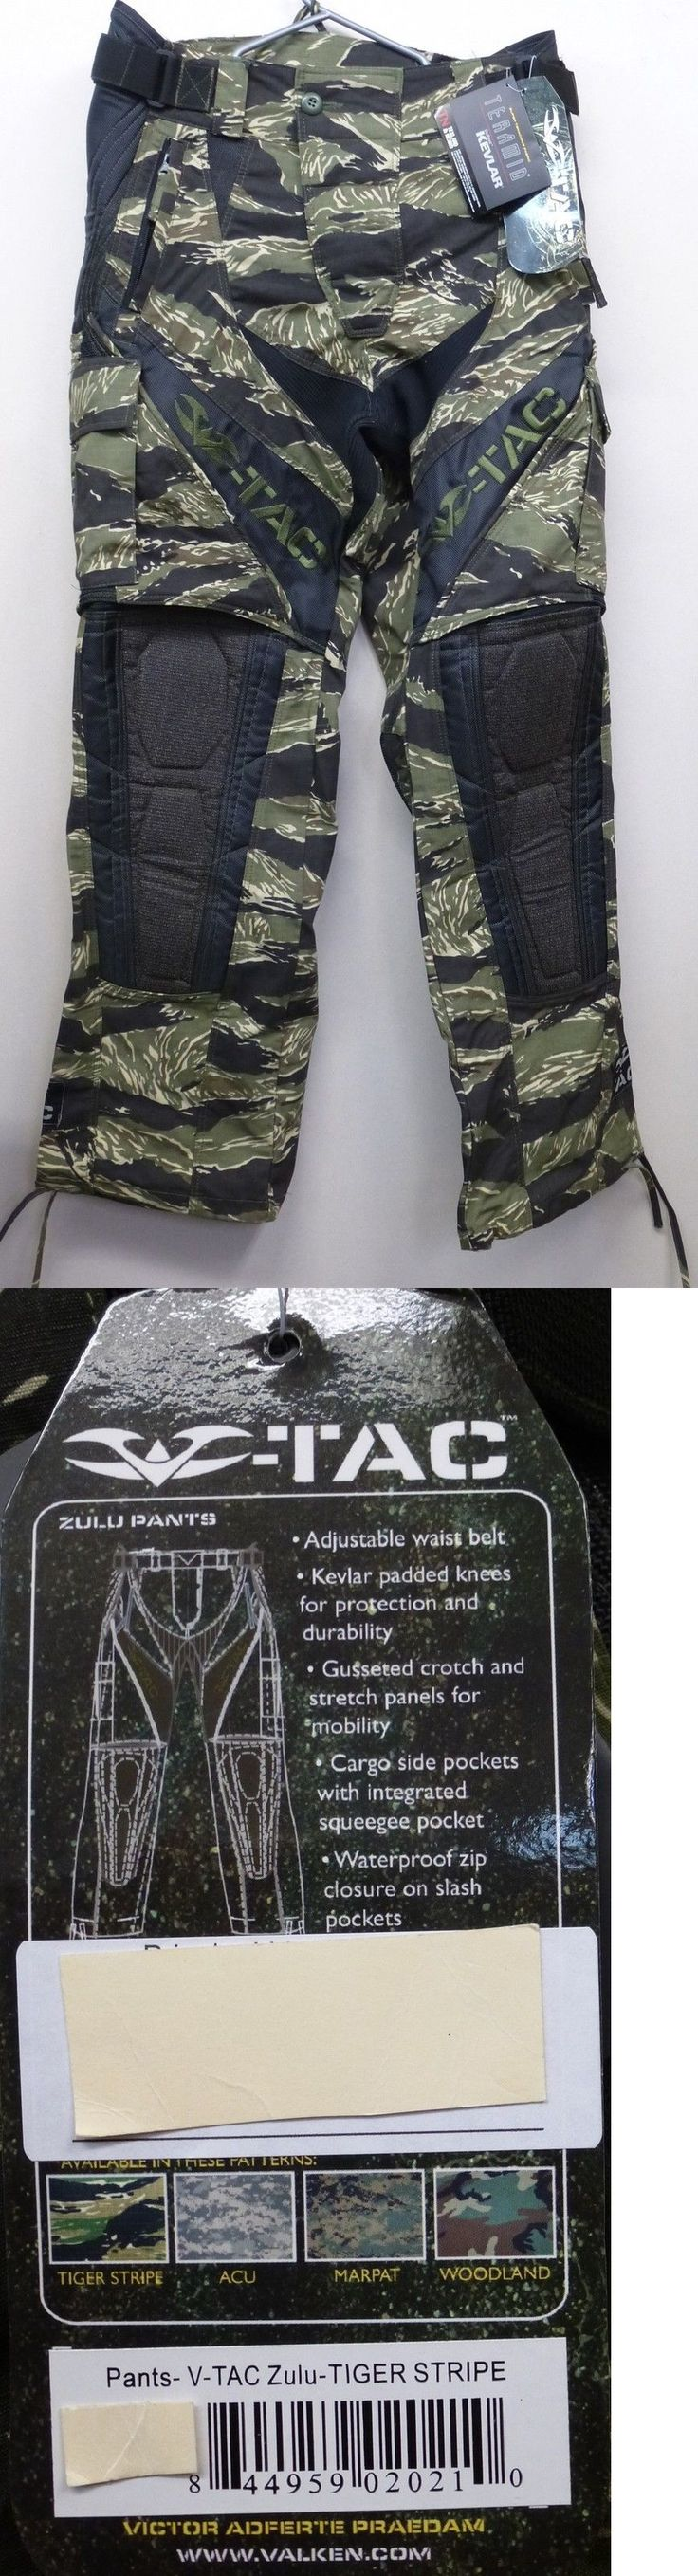 Pants and Shorts 165940: Valken V-Tac Paintball Pants Zulu Tiger Xl New -> BUY IT NOW ONLY: $98.99 on eBay!